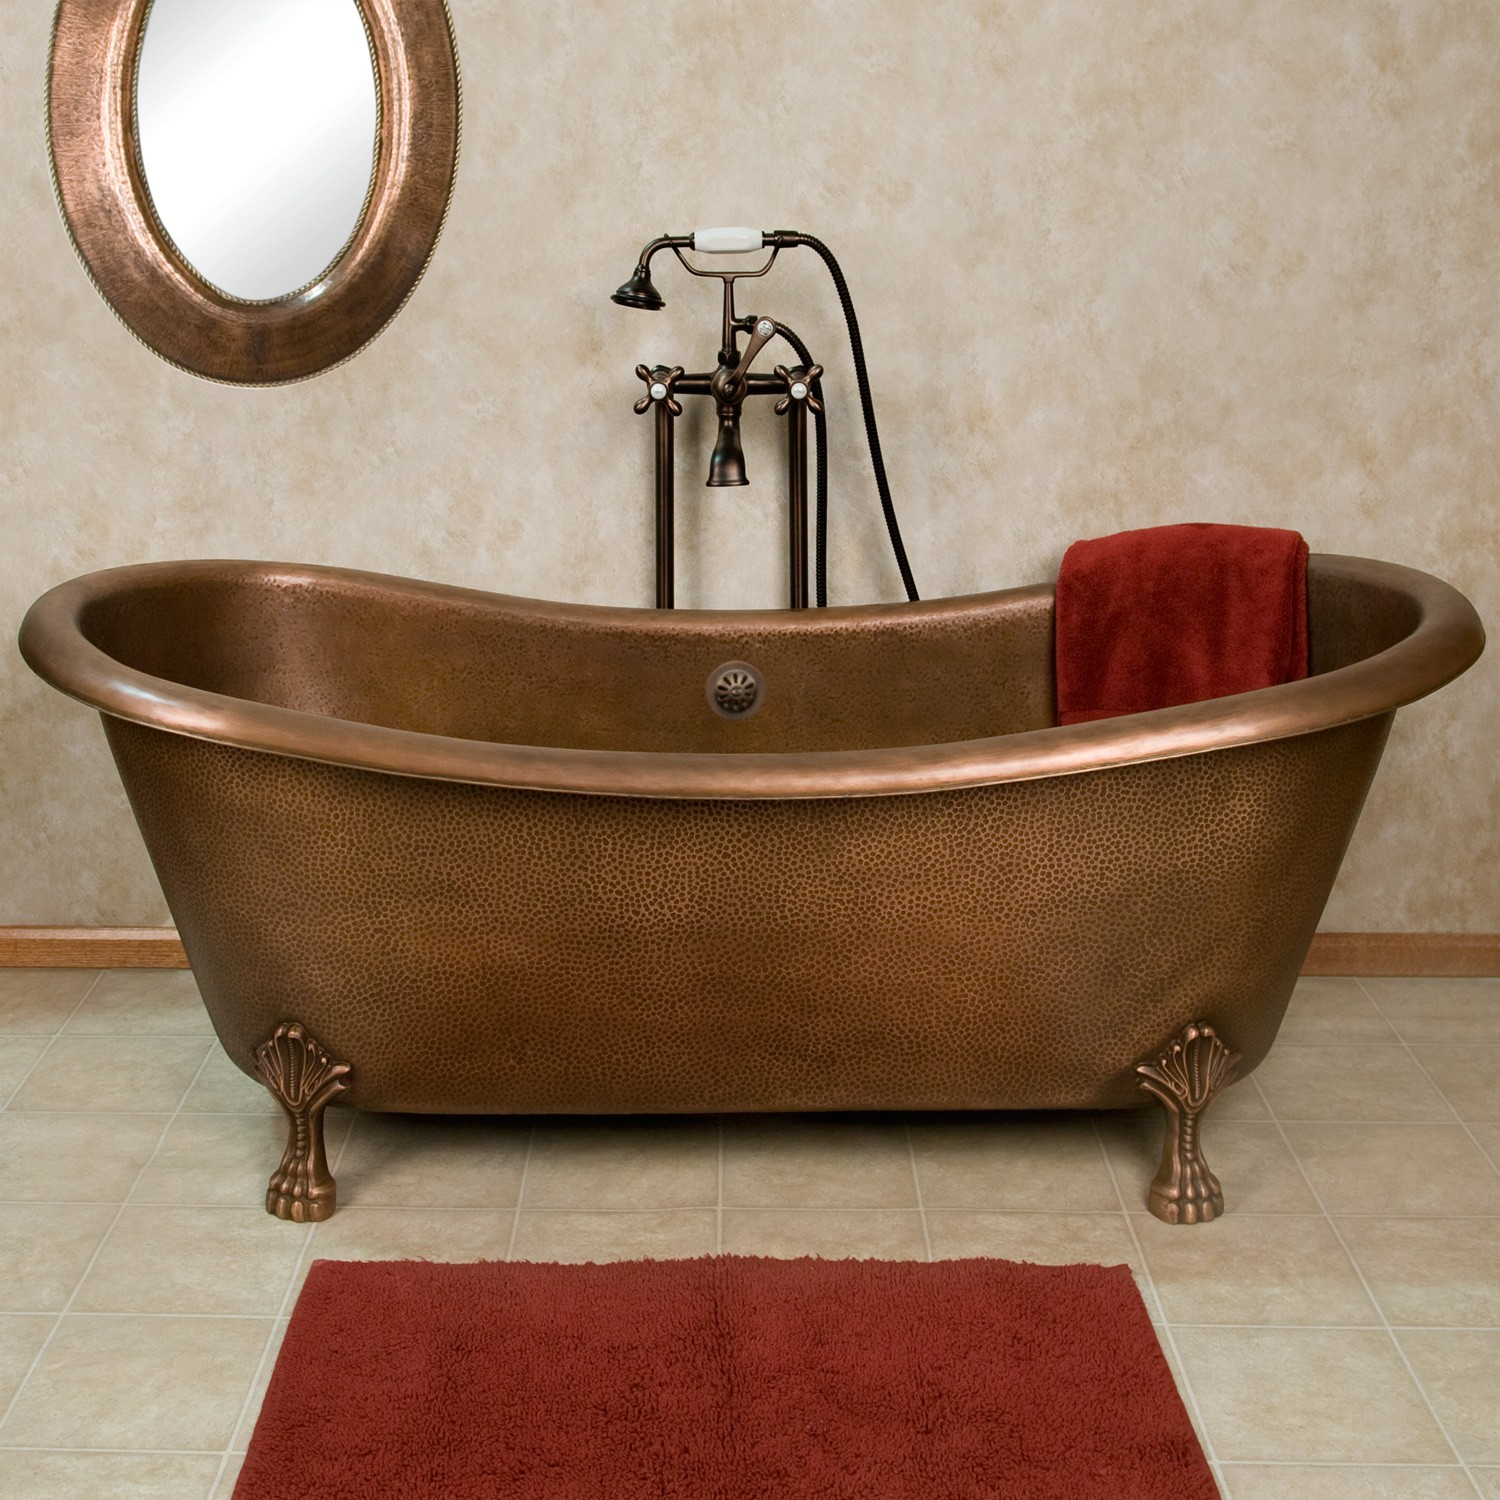 stand alone bathroom sinks with Copper Bathtubs on Bedroom Colour  binations Photos Bedroom Ideas For Teenage Girls Tumblr Bedroom With Bathroom Inside Modern Bedroom Design W17 2 further 6f46c47f5c04299c as well Laundry Room Utility Sinks moreover 20 Beautiful Glass Vessel Sinks in addition Wash Basins.